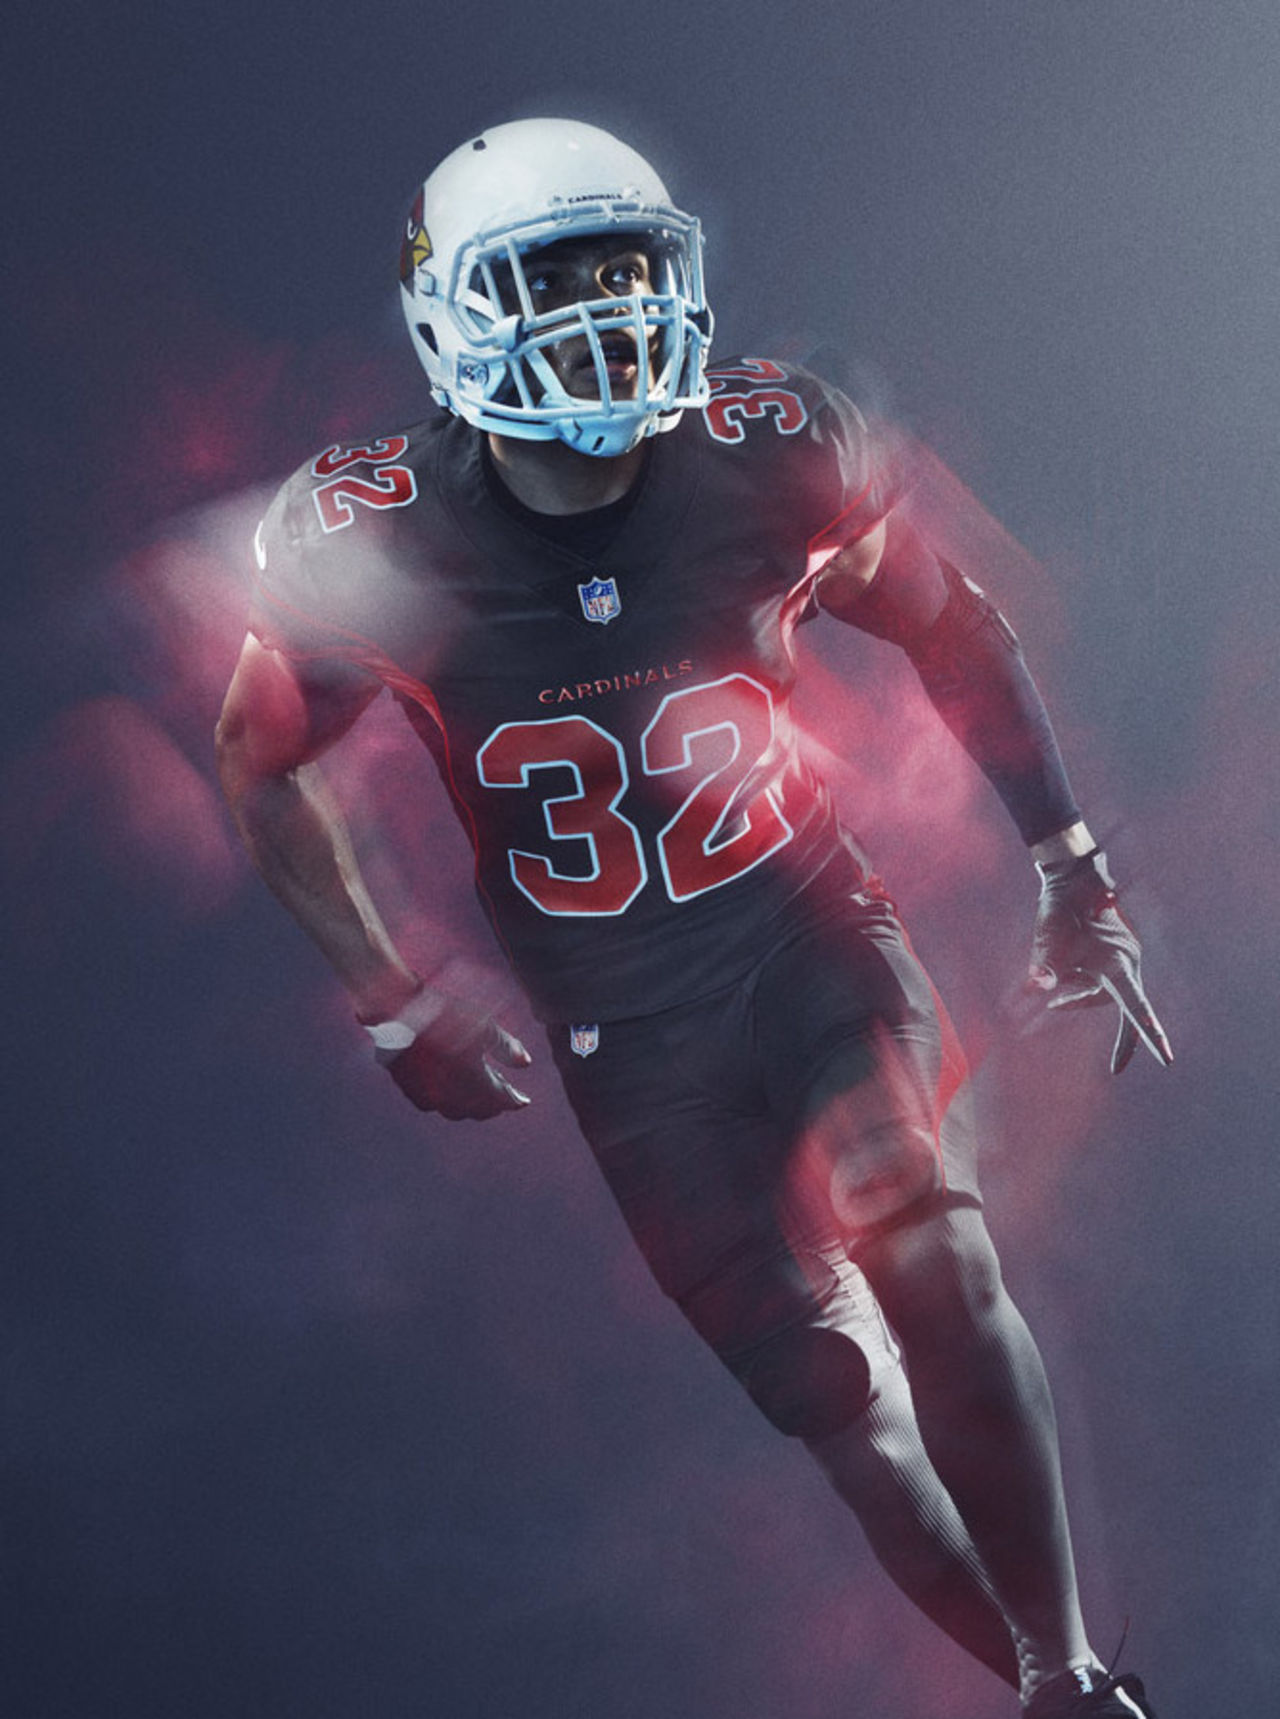 color rush jersey 2016